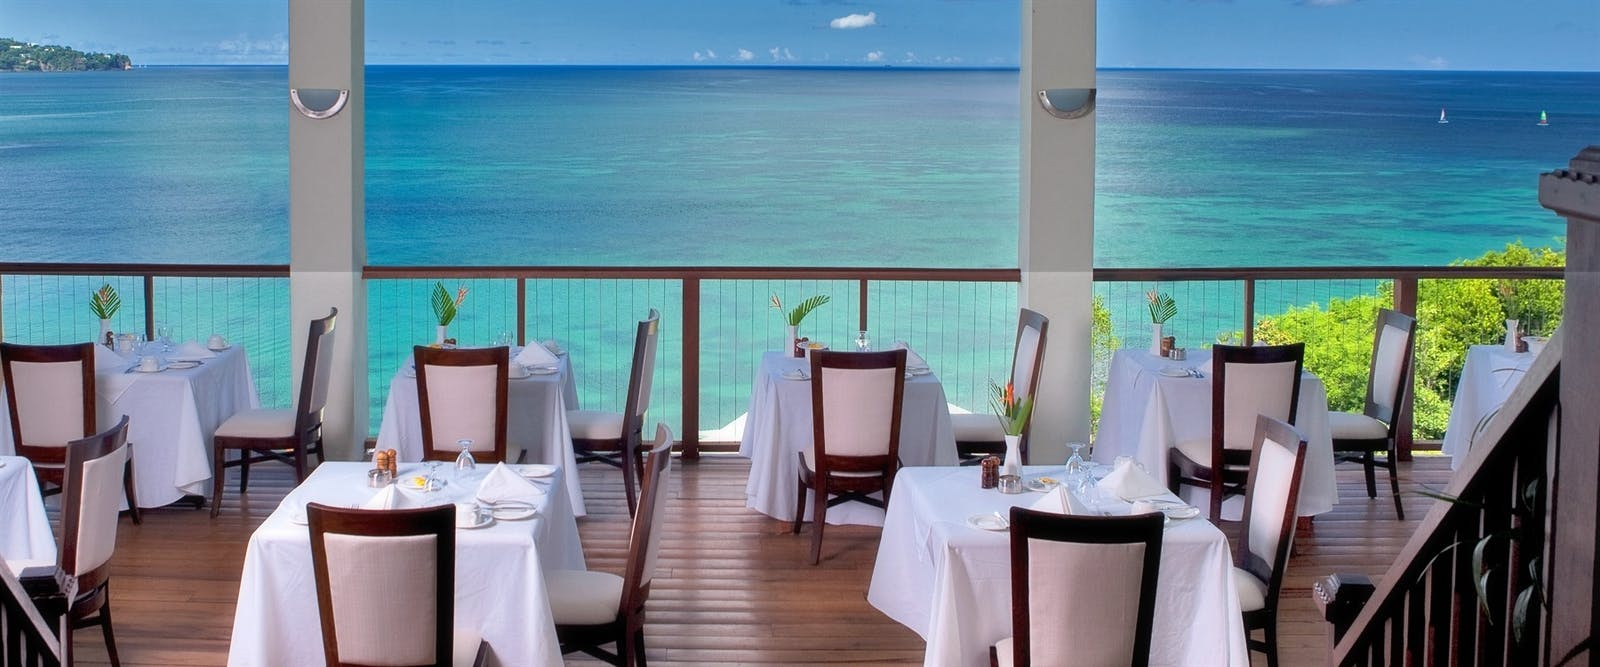 Windsong Restaurant at Calabash Cove, St Lucia